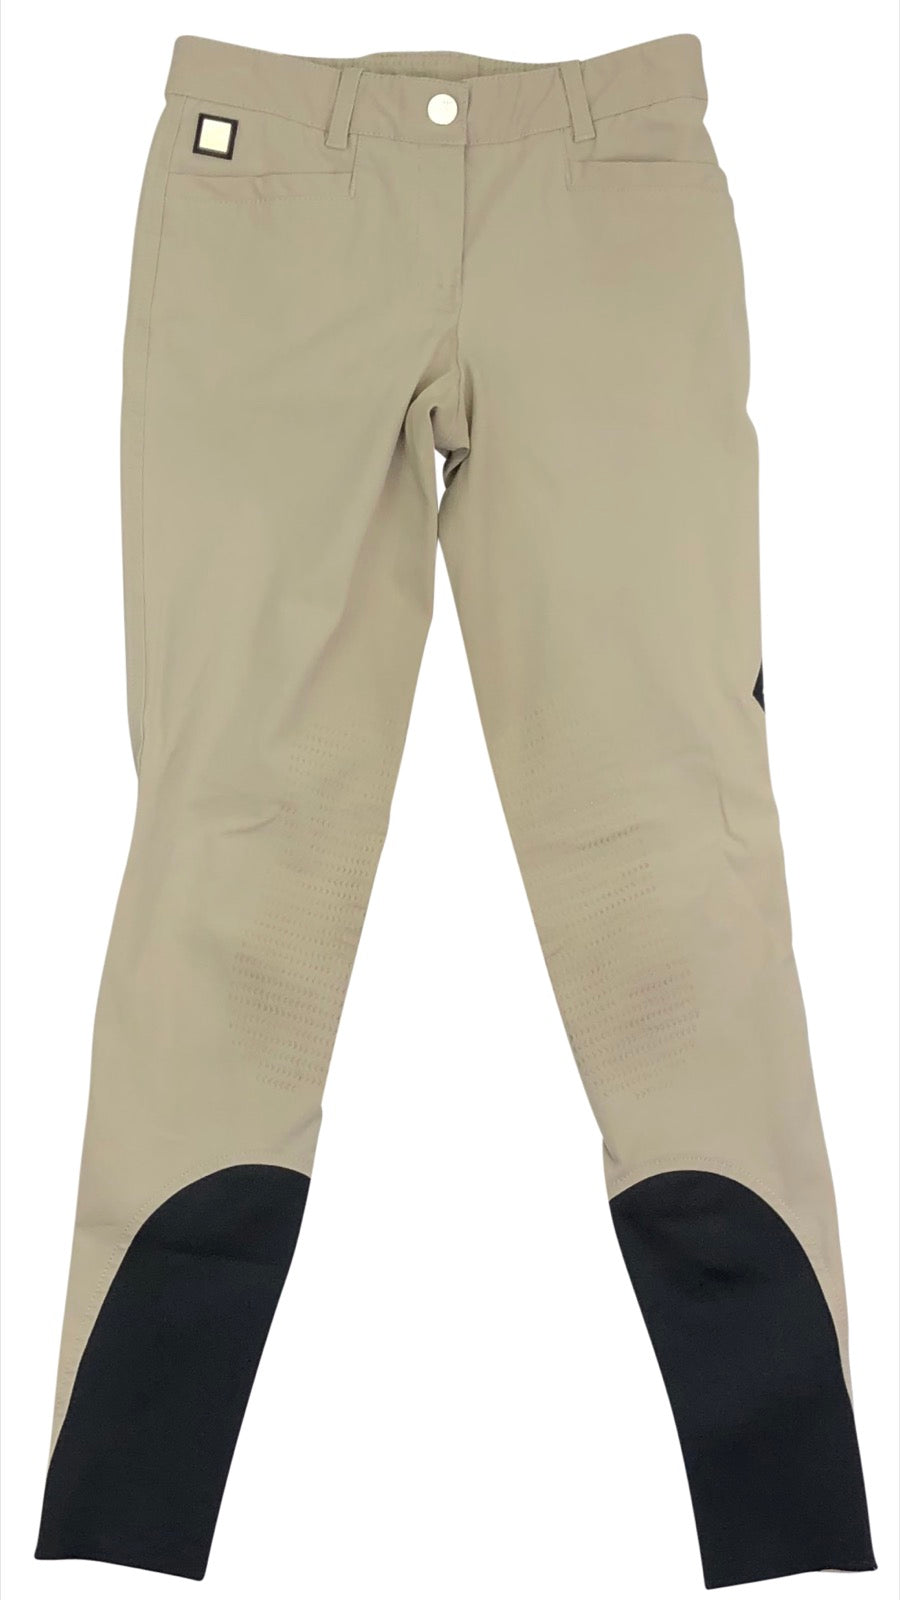 Equiline Ash Breeches  in Tan